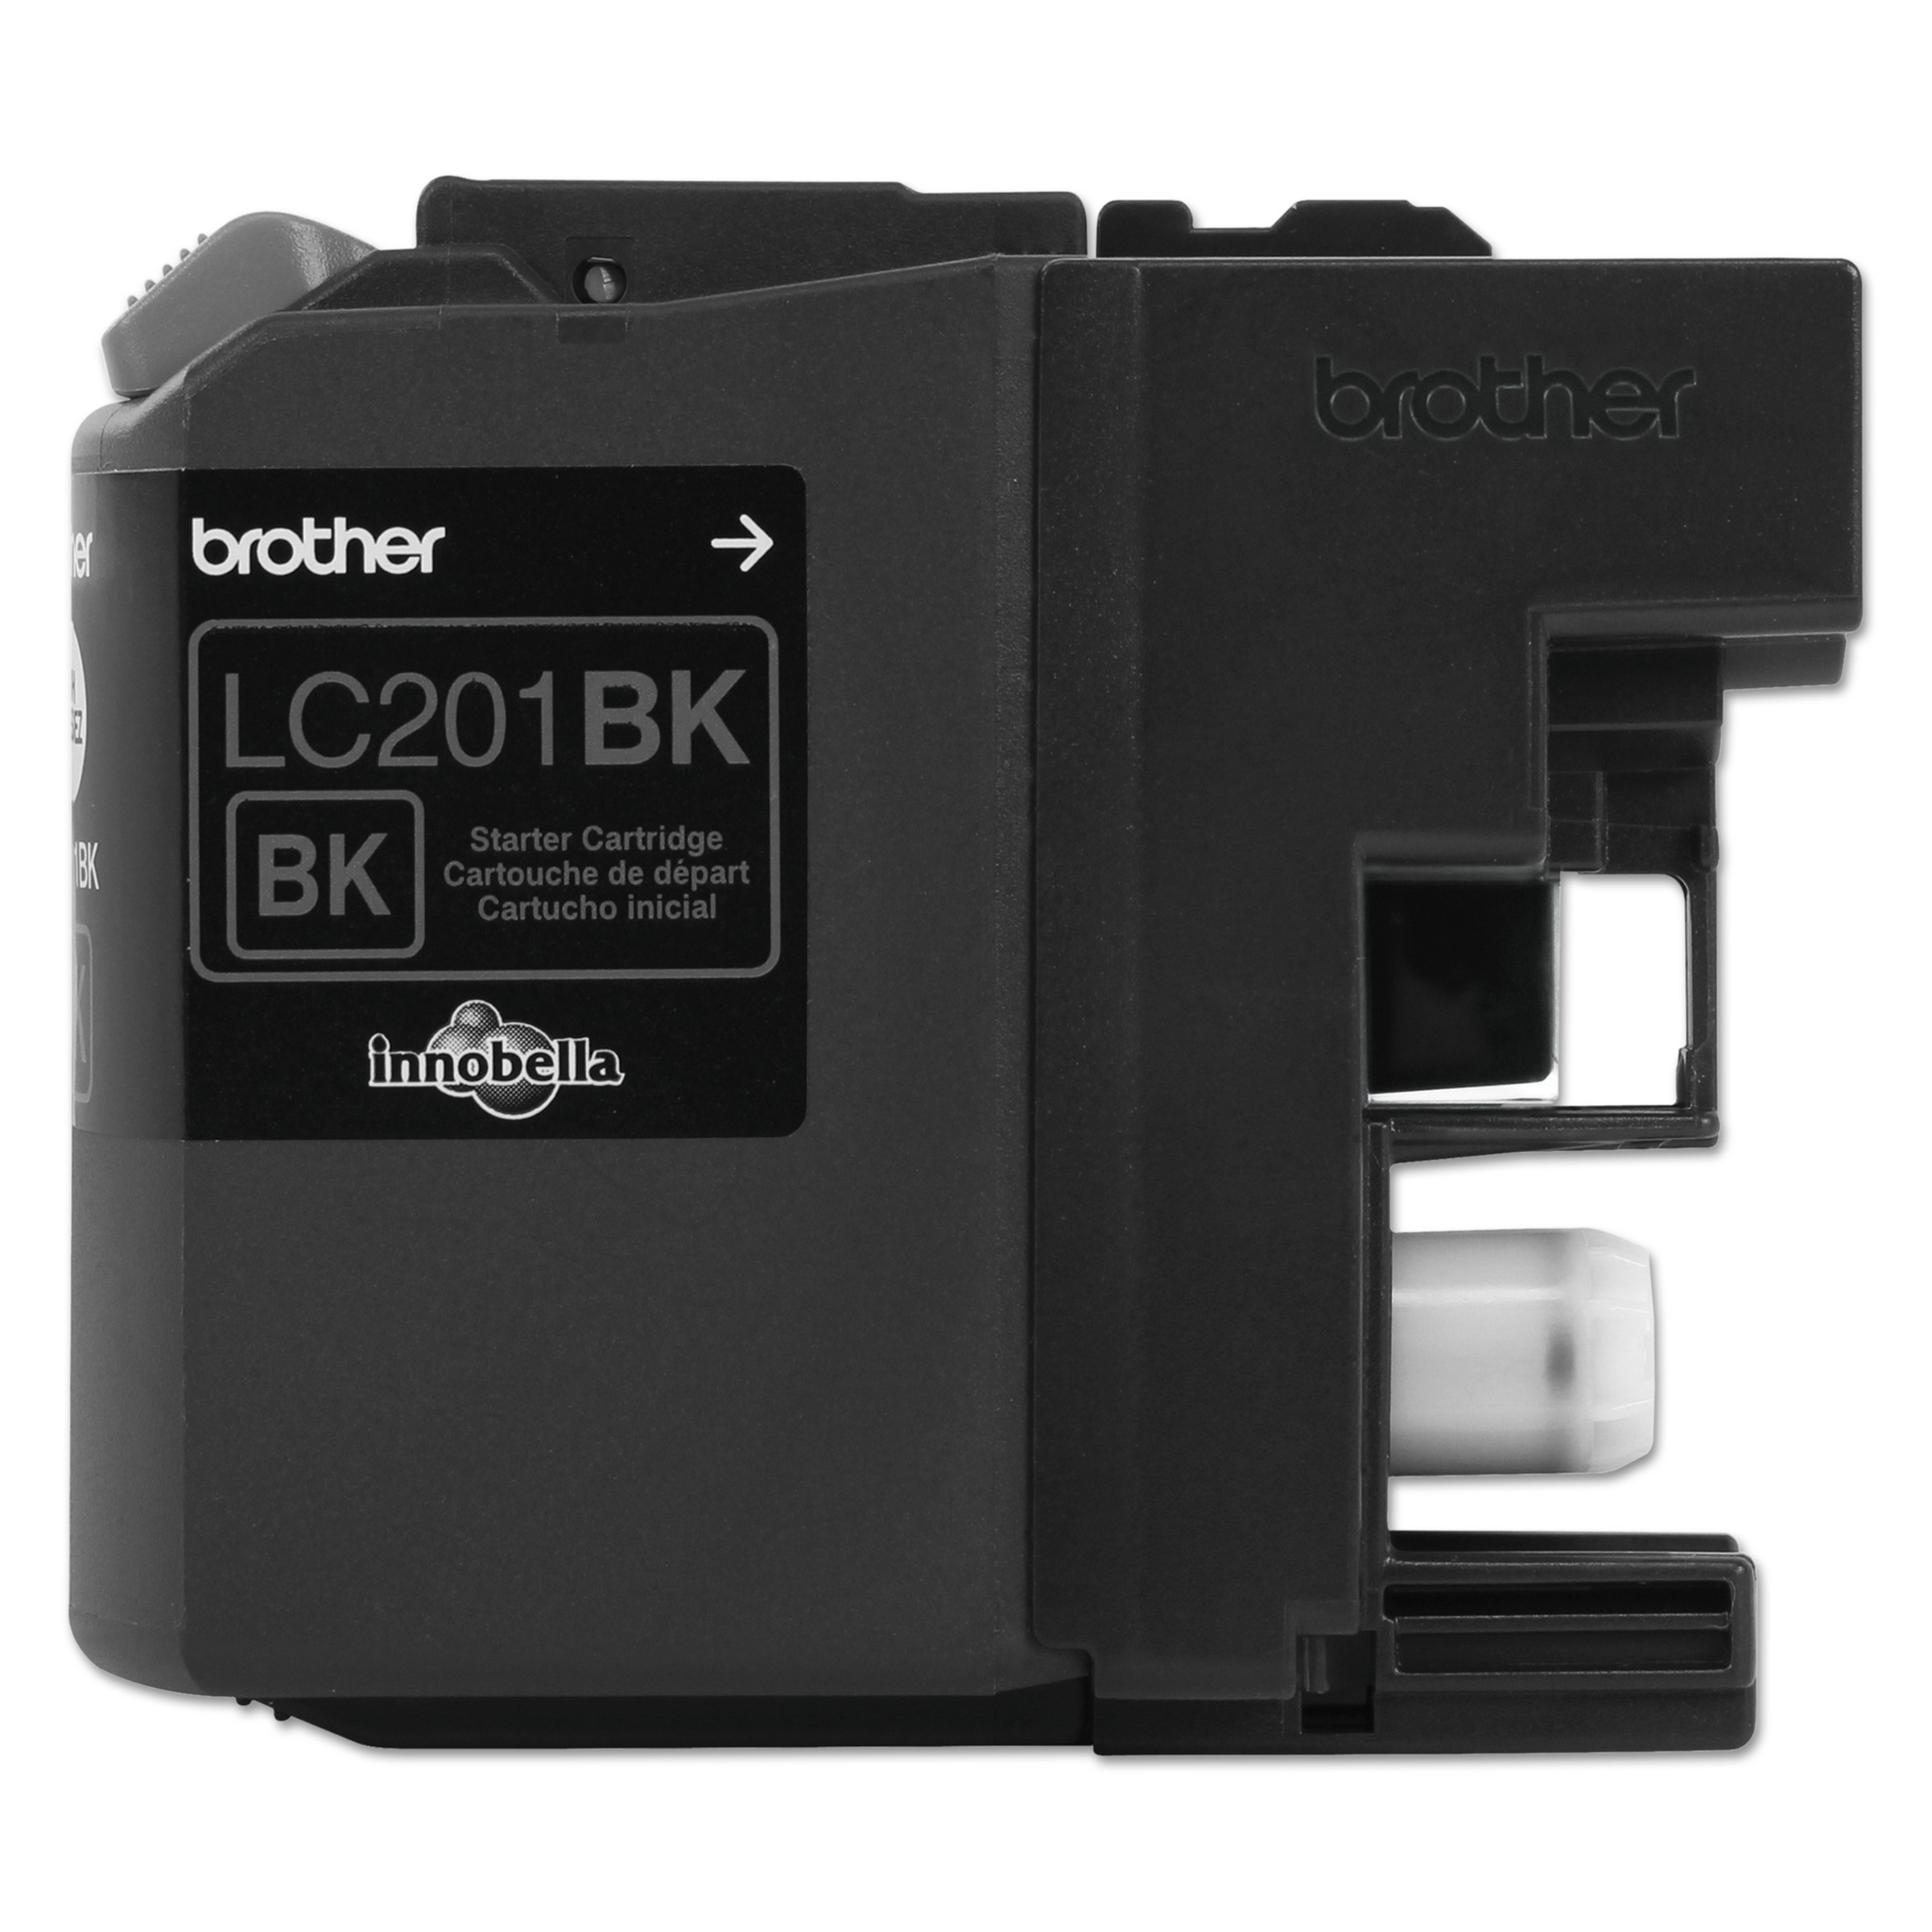 Brother LC201BK Innobella Ink, Black